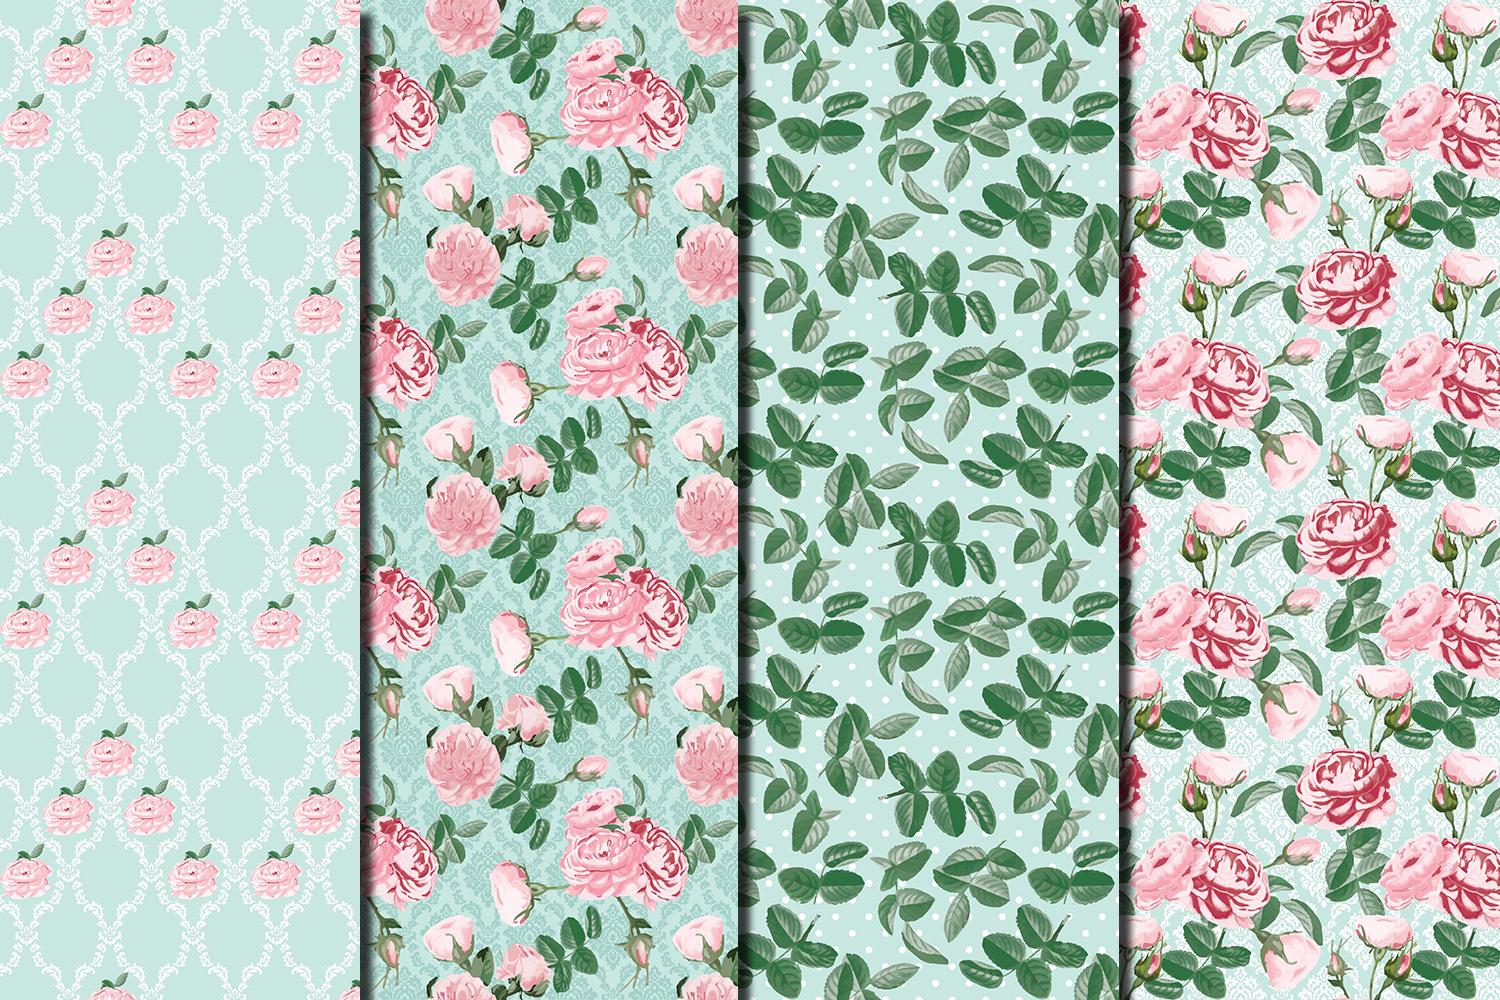 Shabby chic pink roses seamless patterns example image 2